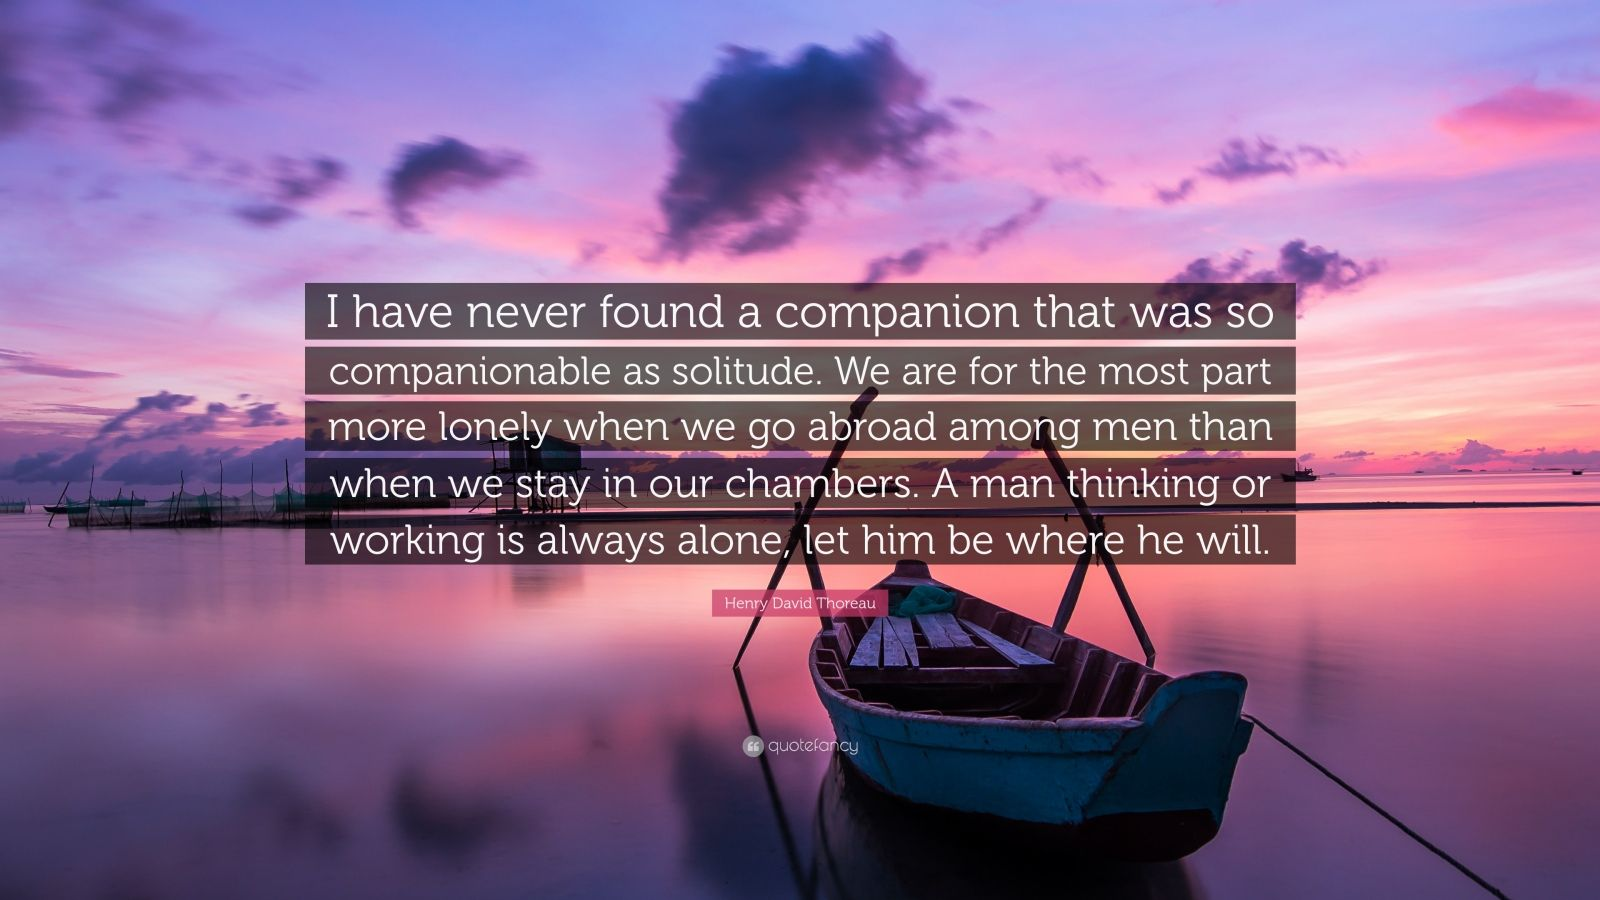 "Henry David Thoreau Quote: ""I have never found a companion that was so companionable as solitude. We are for the most part more lonely when we go abroad among men than when we stay in our chambers. A man thinking or working is always alone, let him be where he will."""